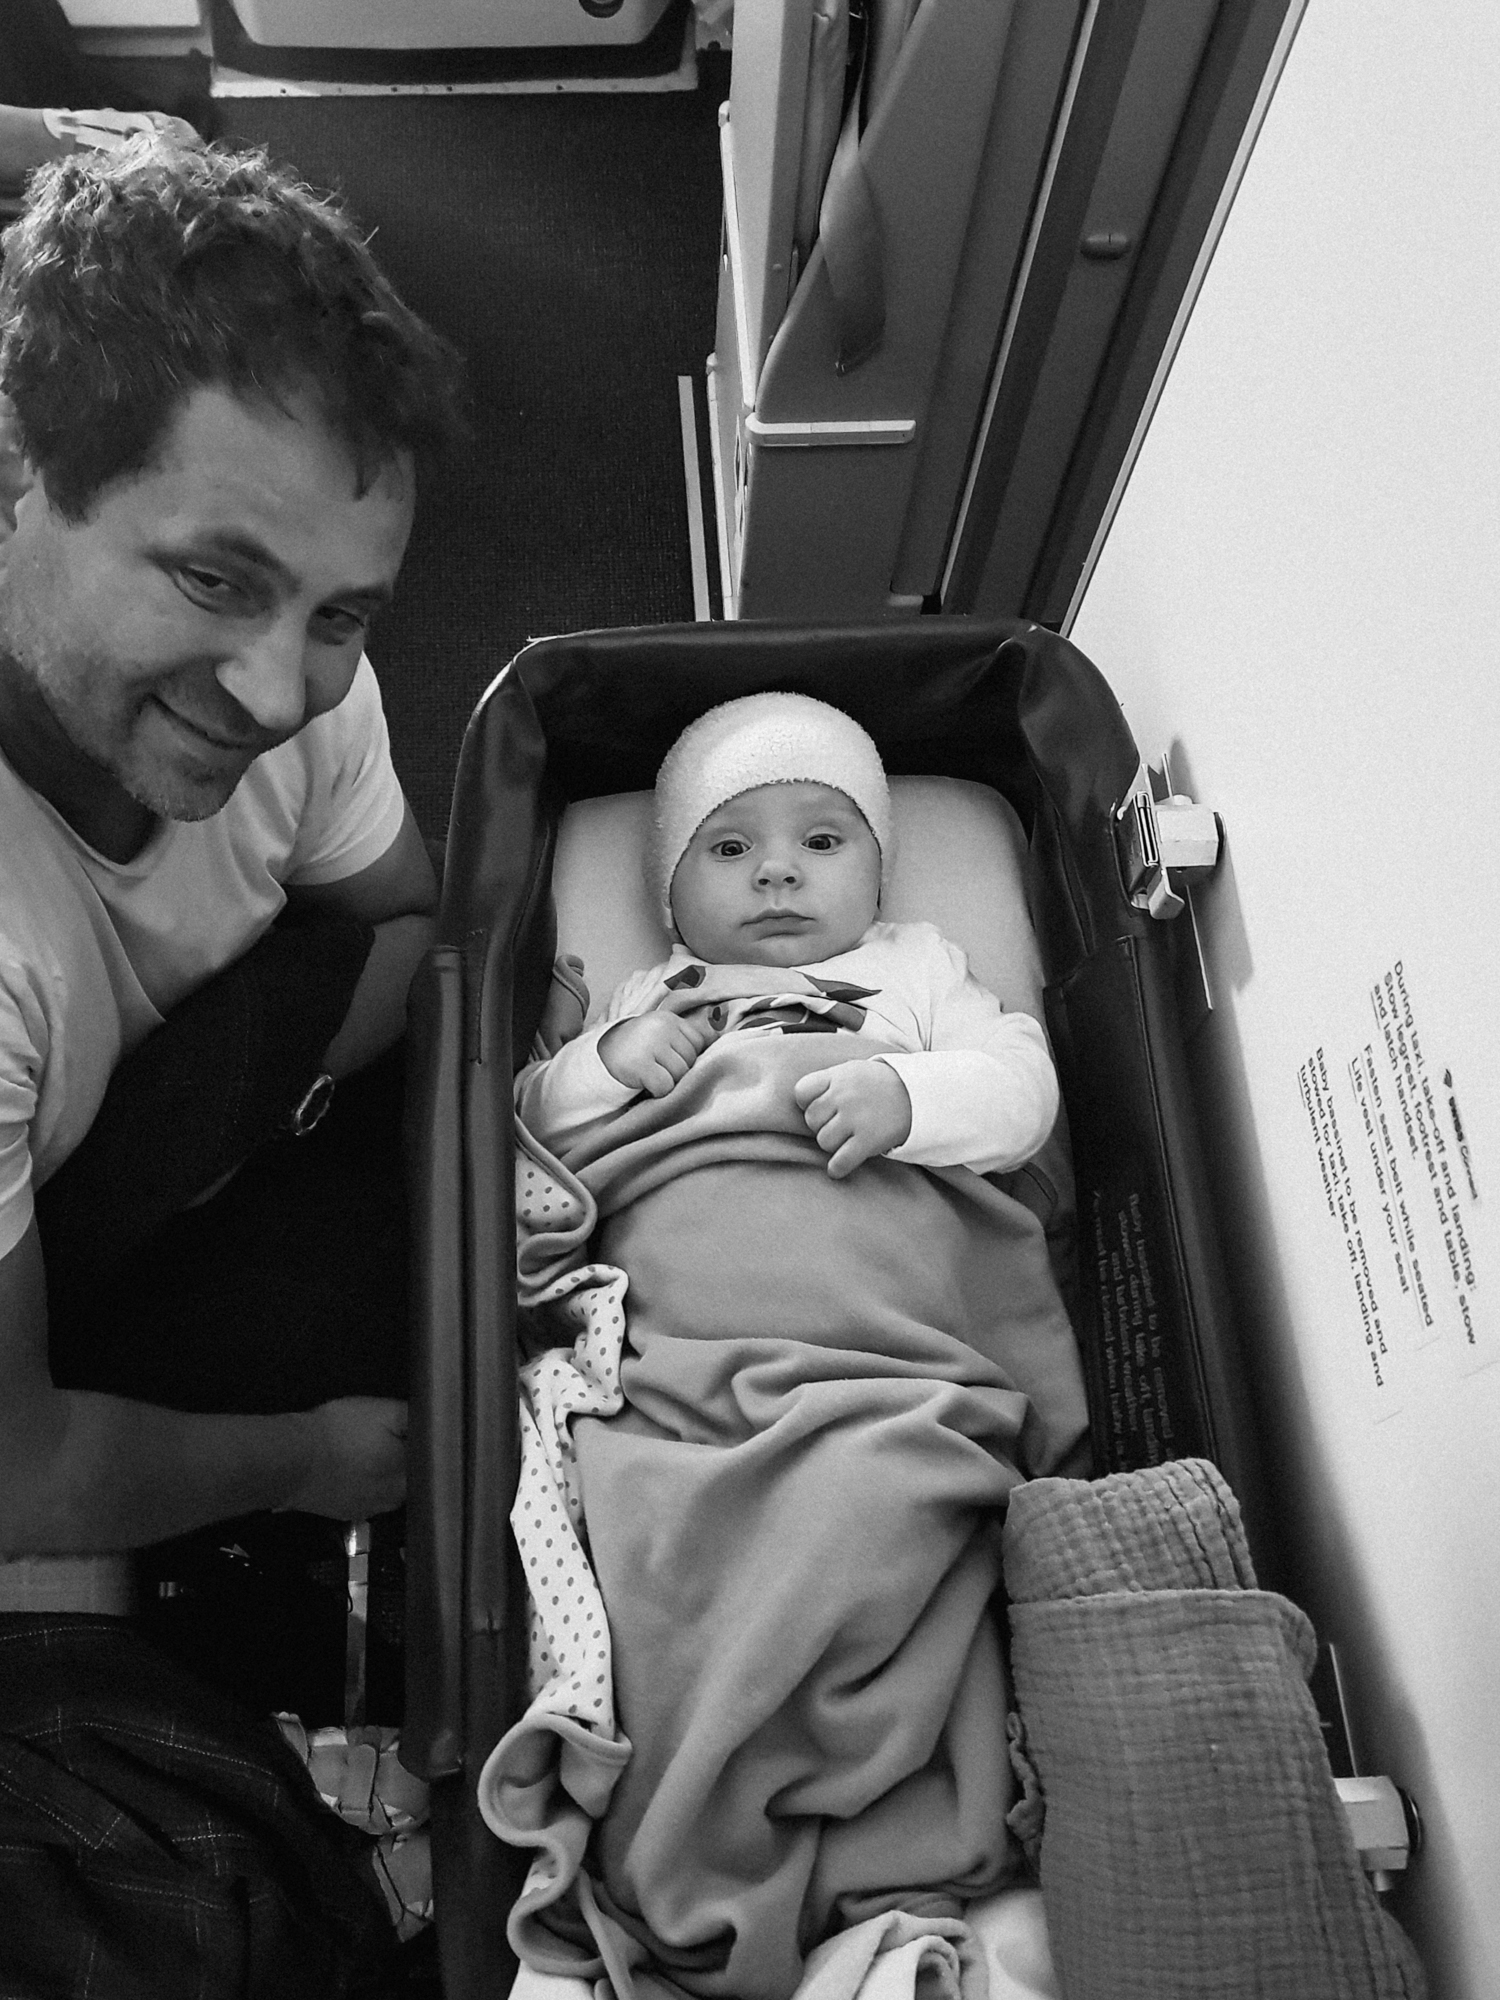 A baby looks up from an airplane bassinet.